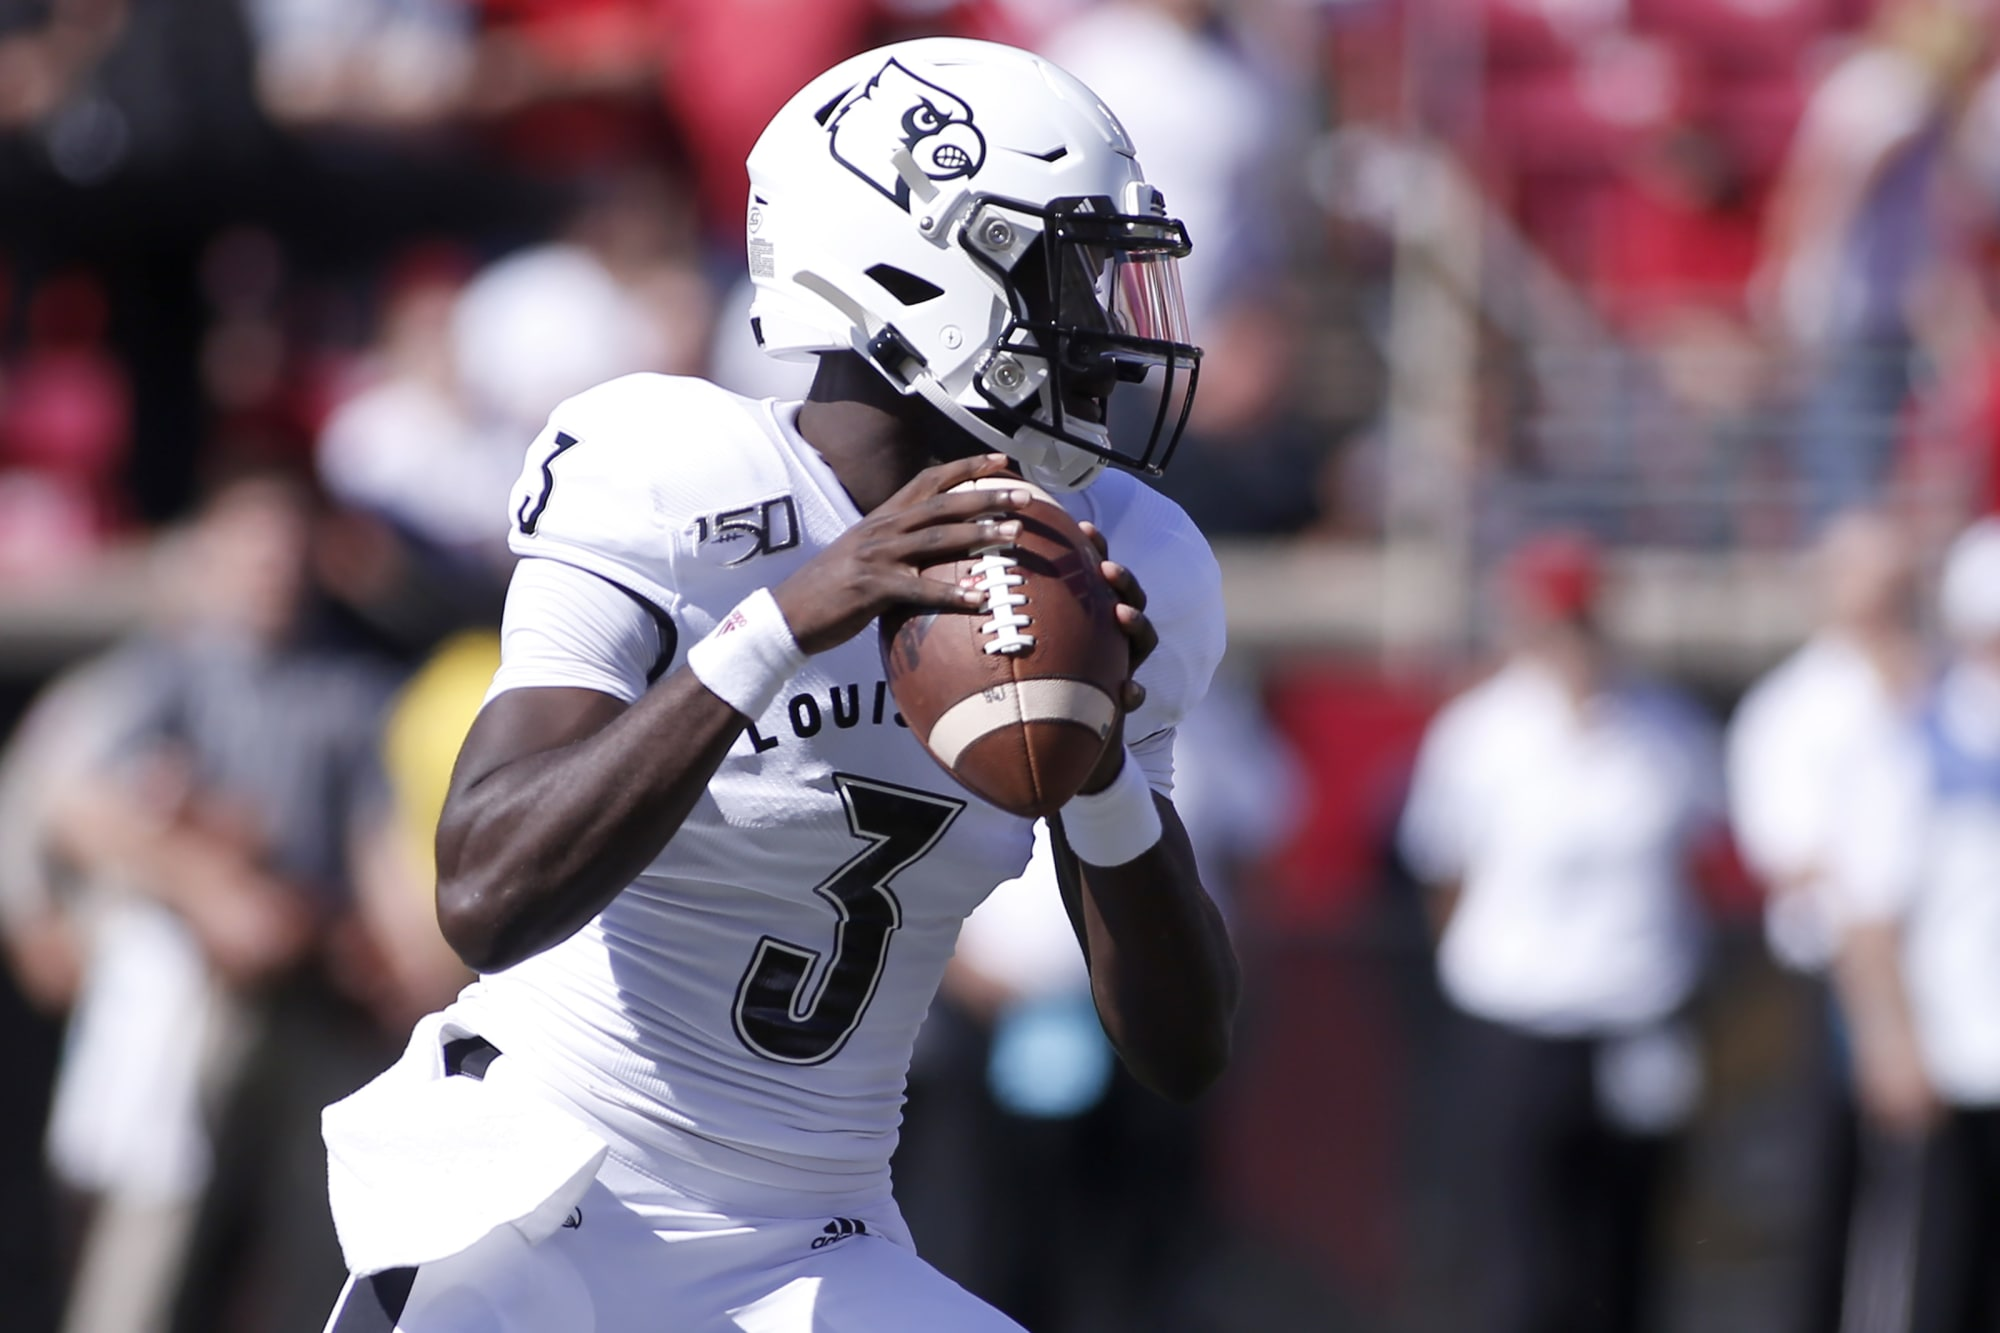 Louisville football: So what next at quarterback in class of 2021?